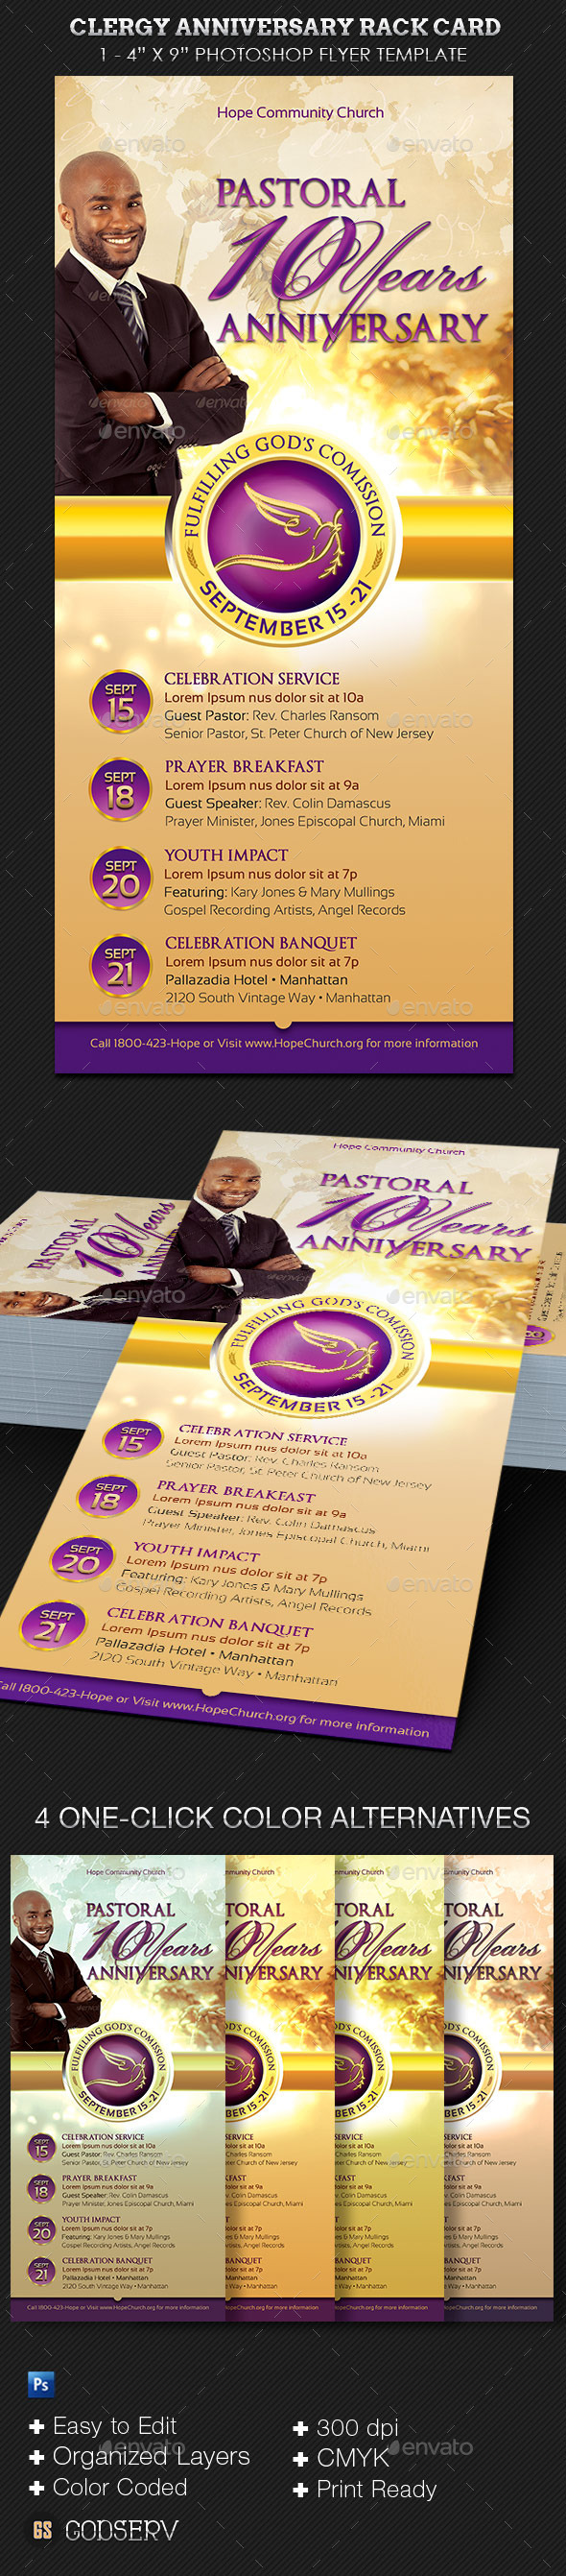 GraphicRiver Clergy Anniversary Rack Card Template 10913328